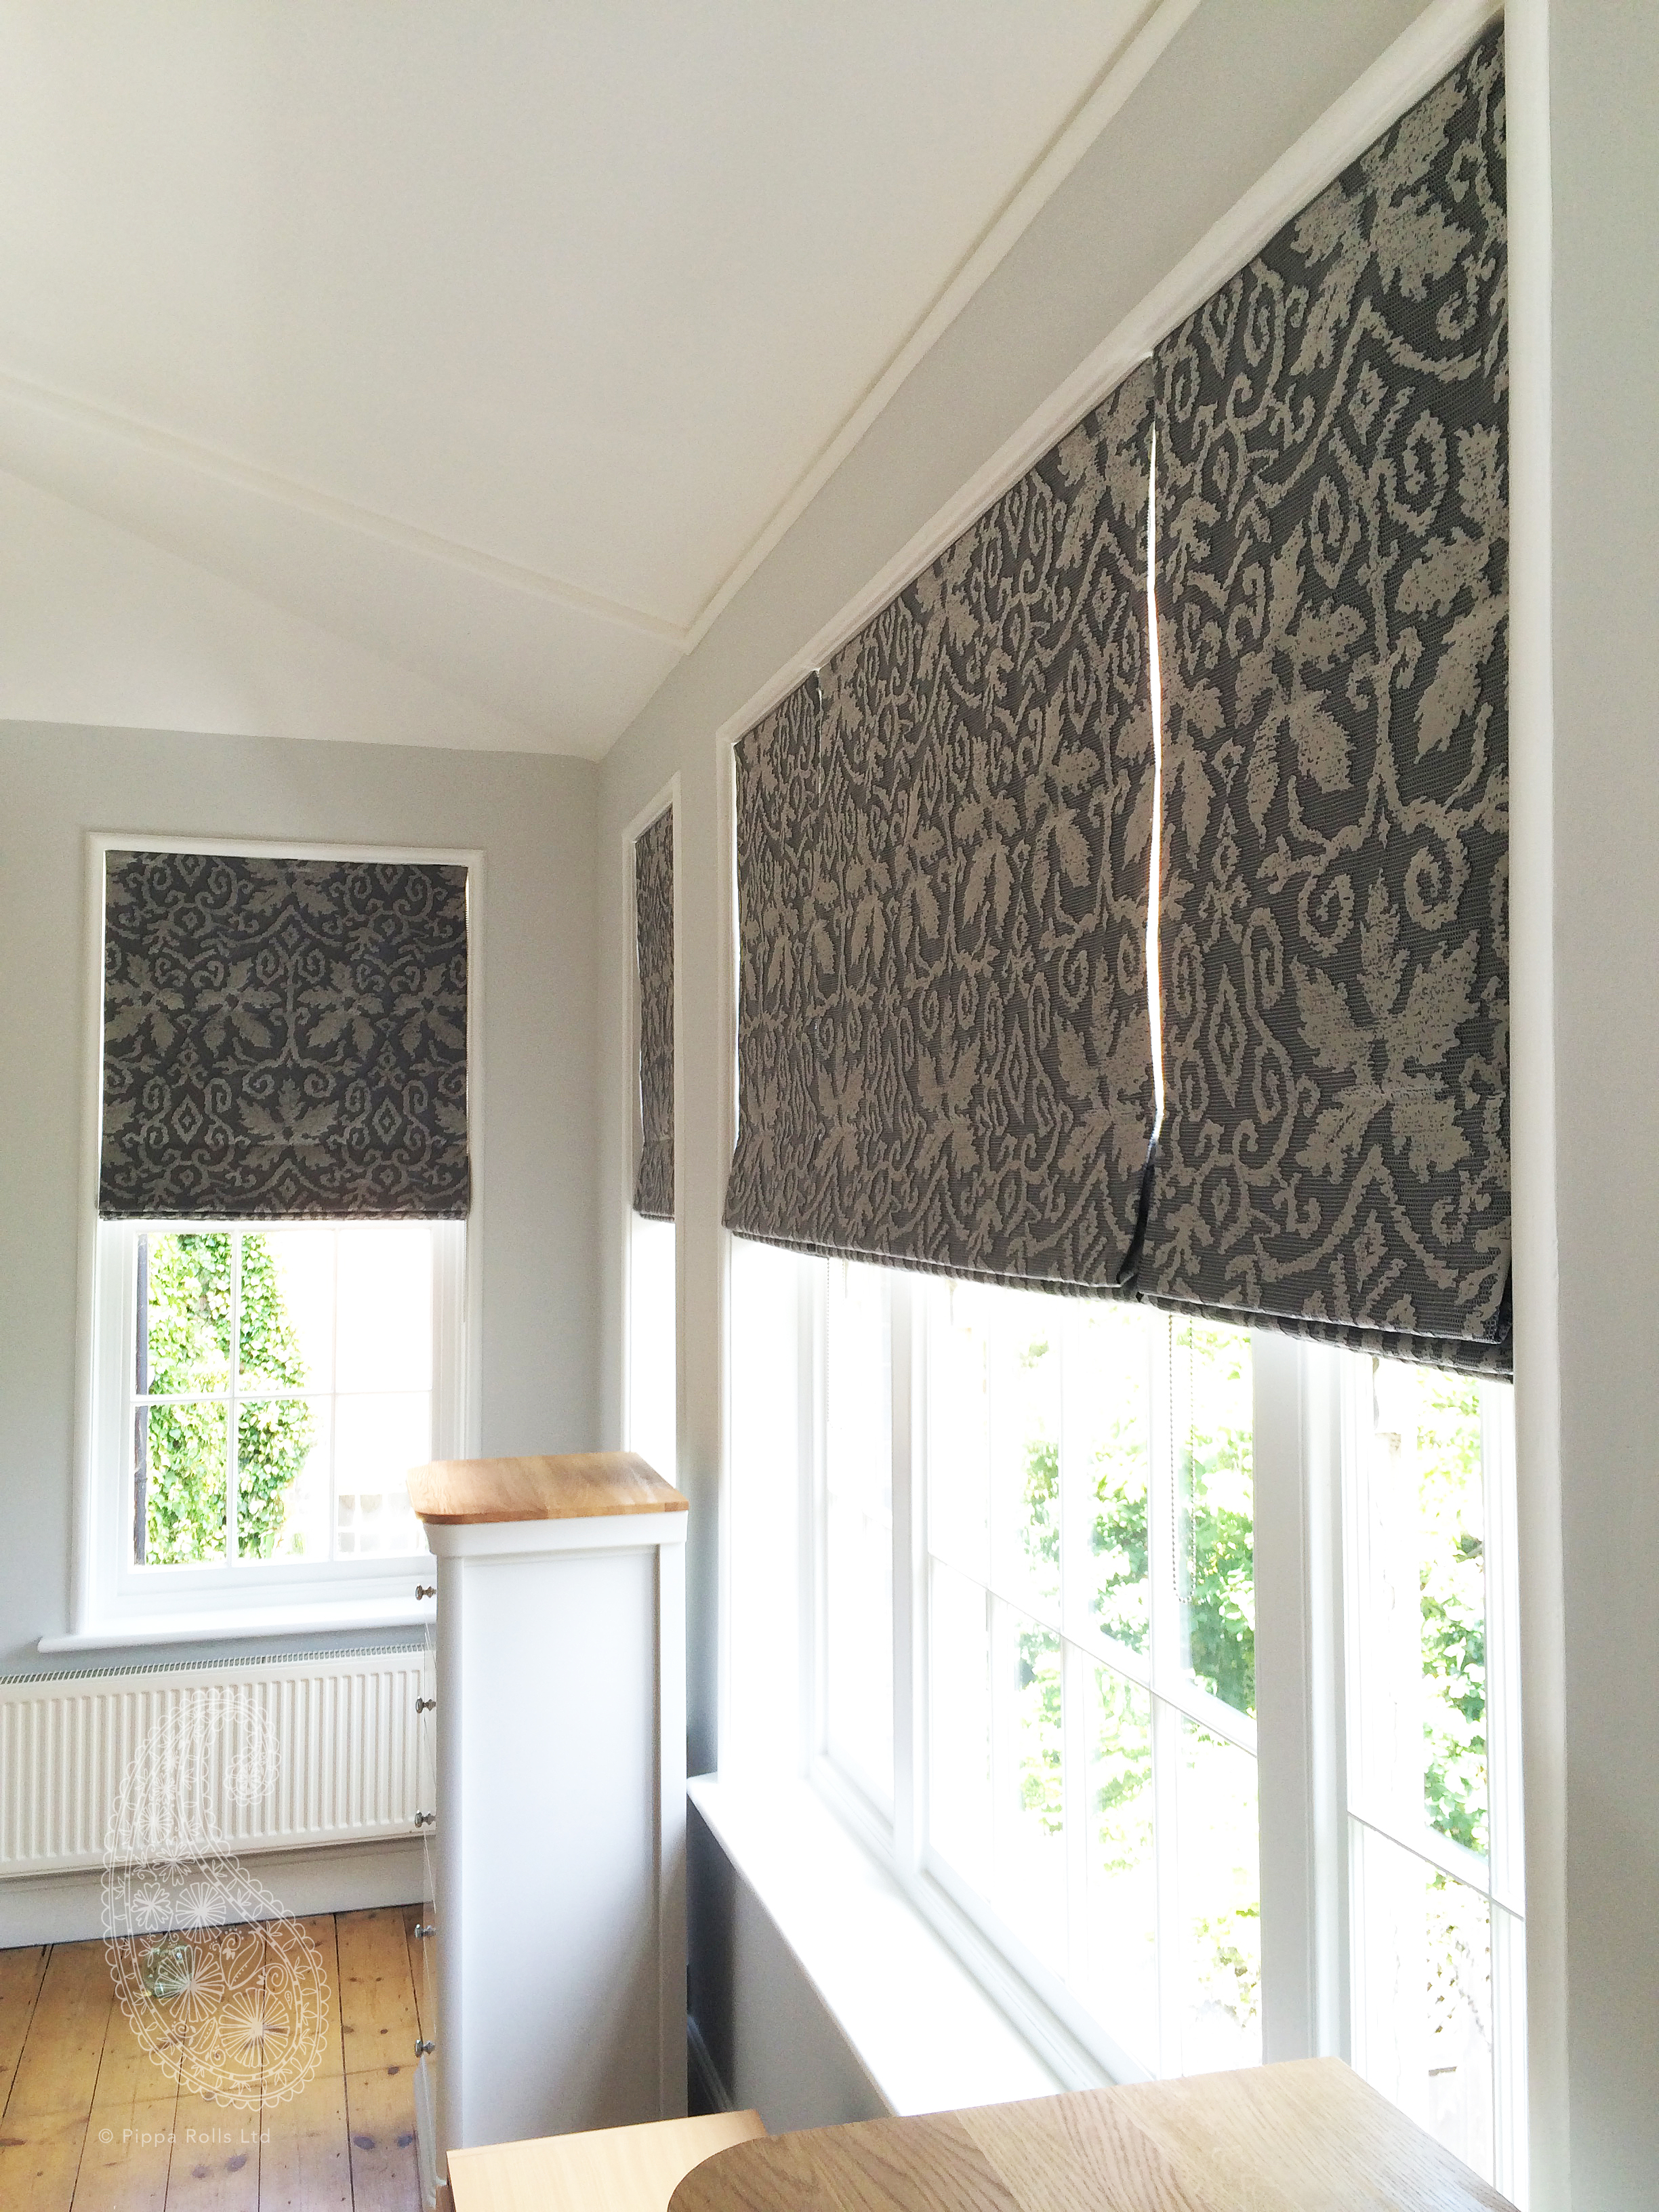 Inside reveal Roman blinds Pippa Rolls Limited jpeg.jpg